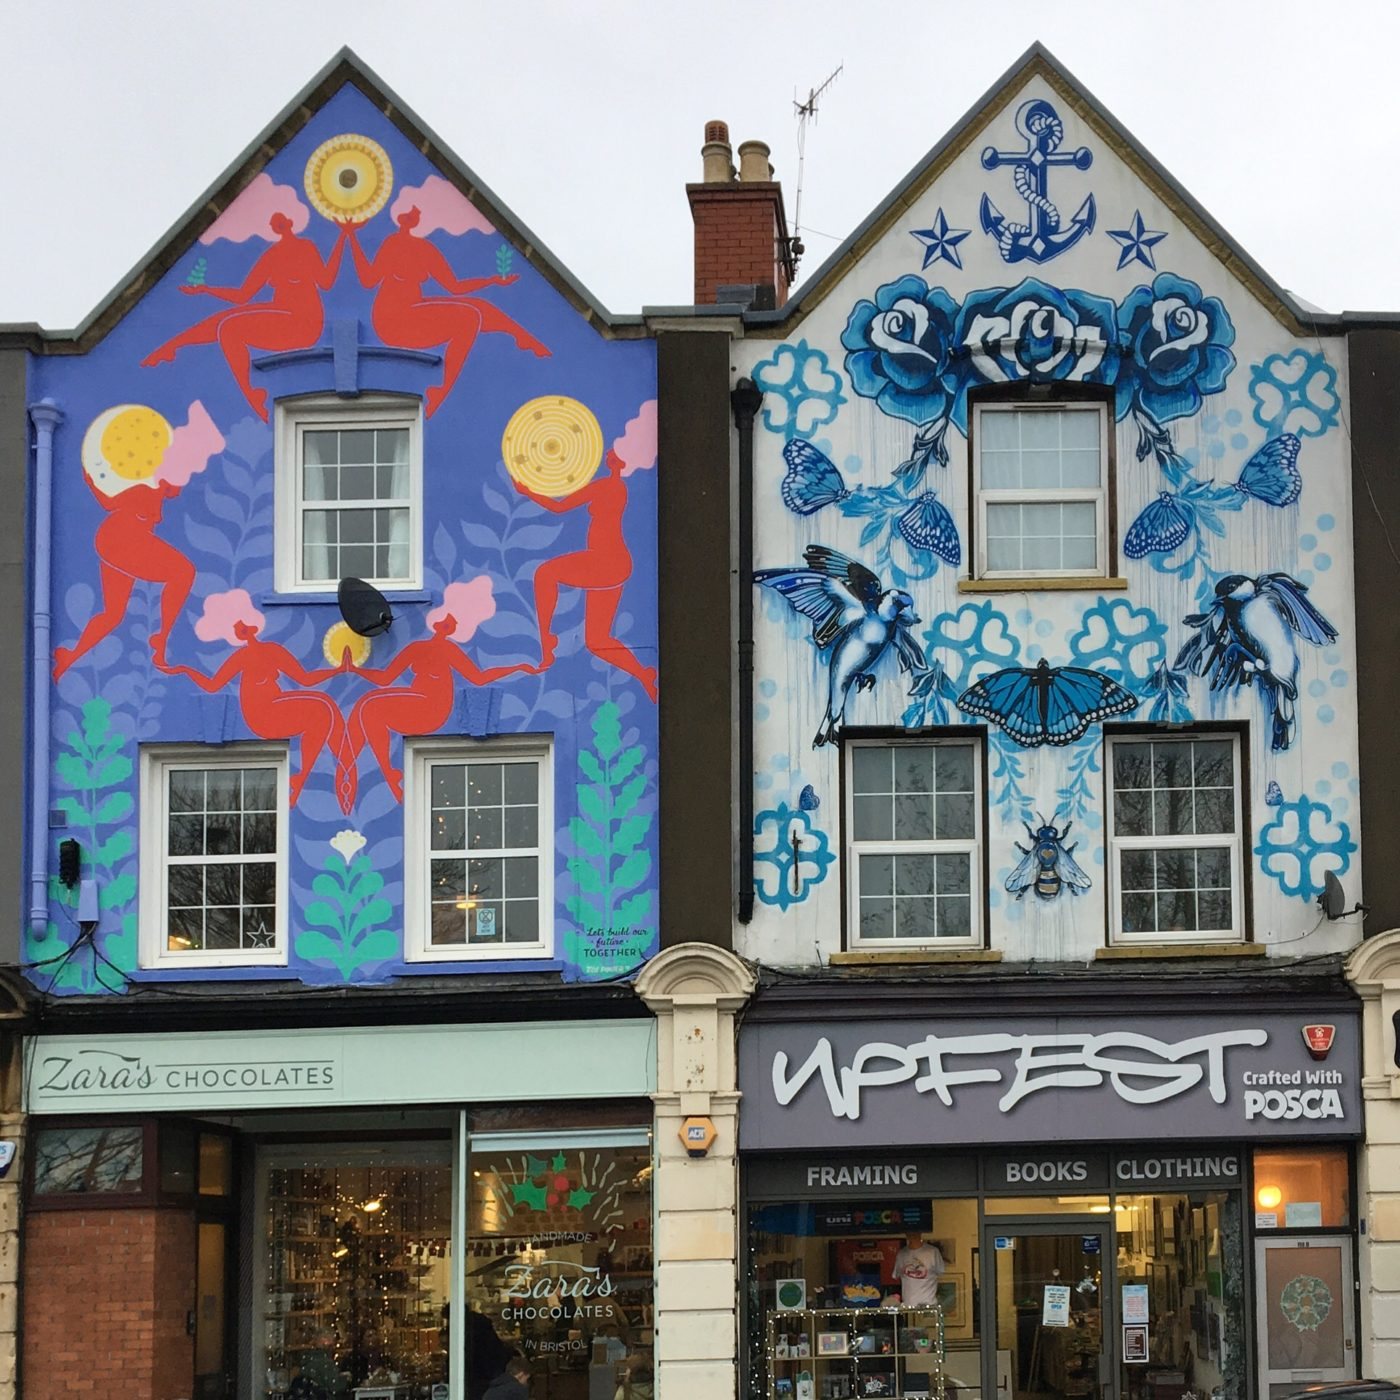 Upfest shop Bedminster